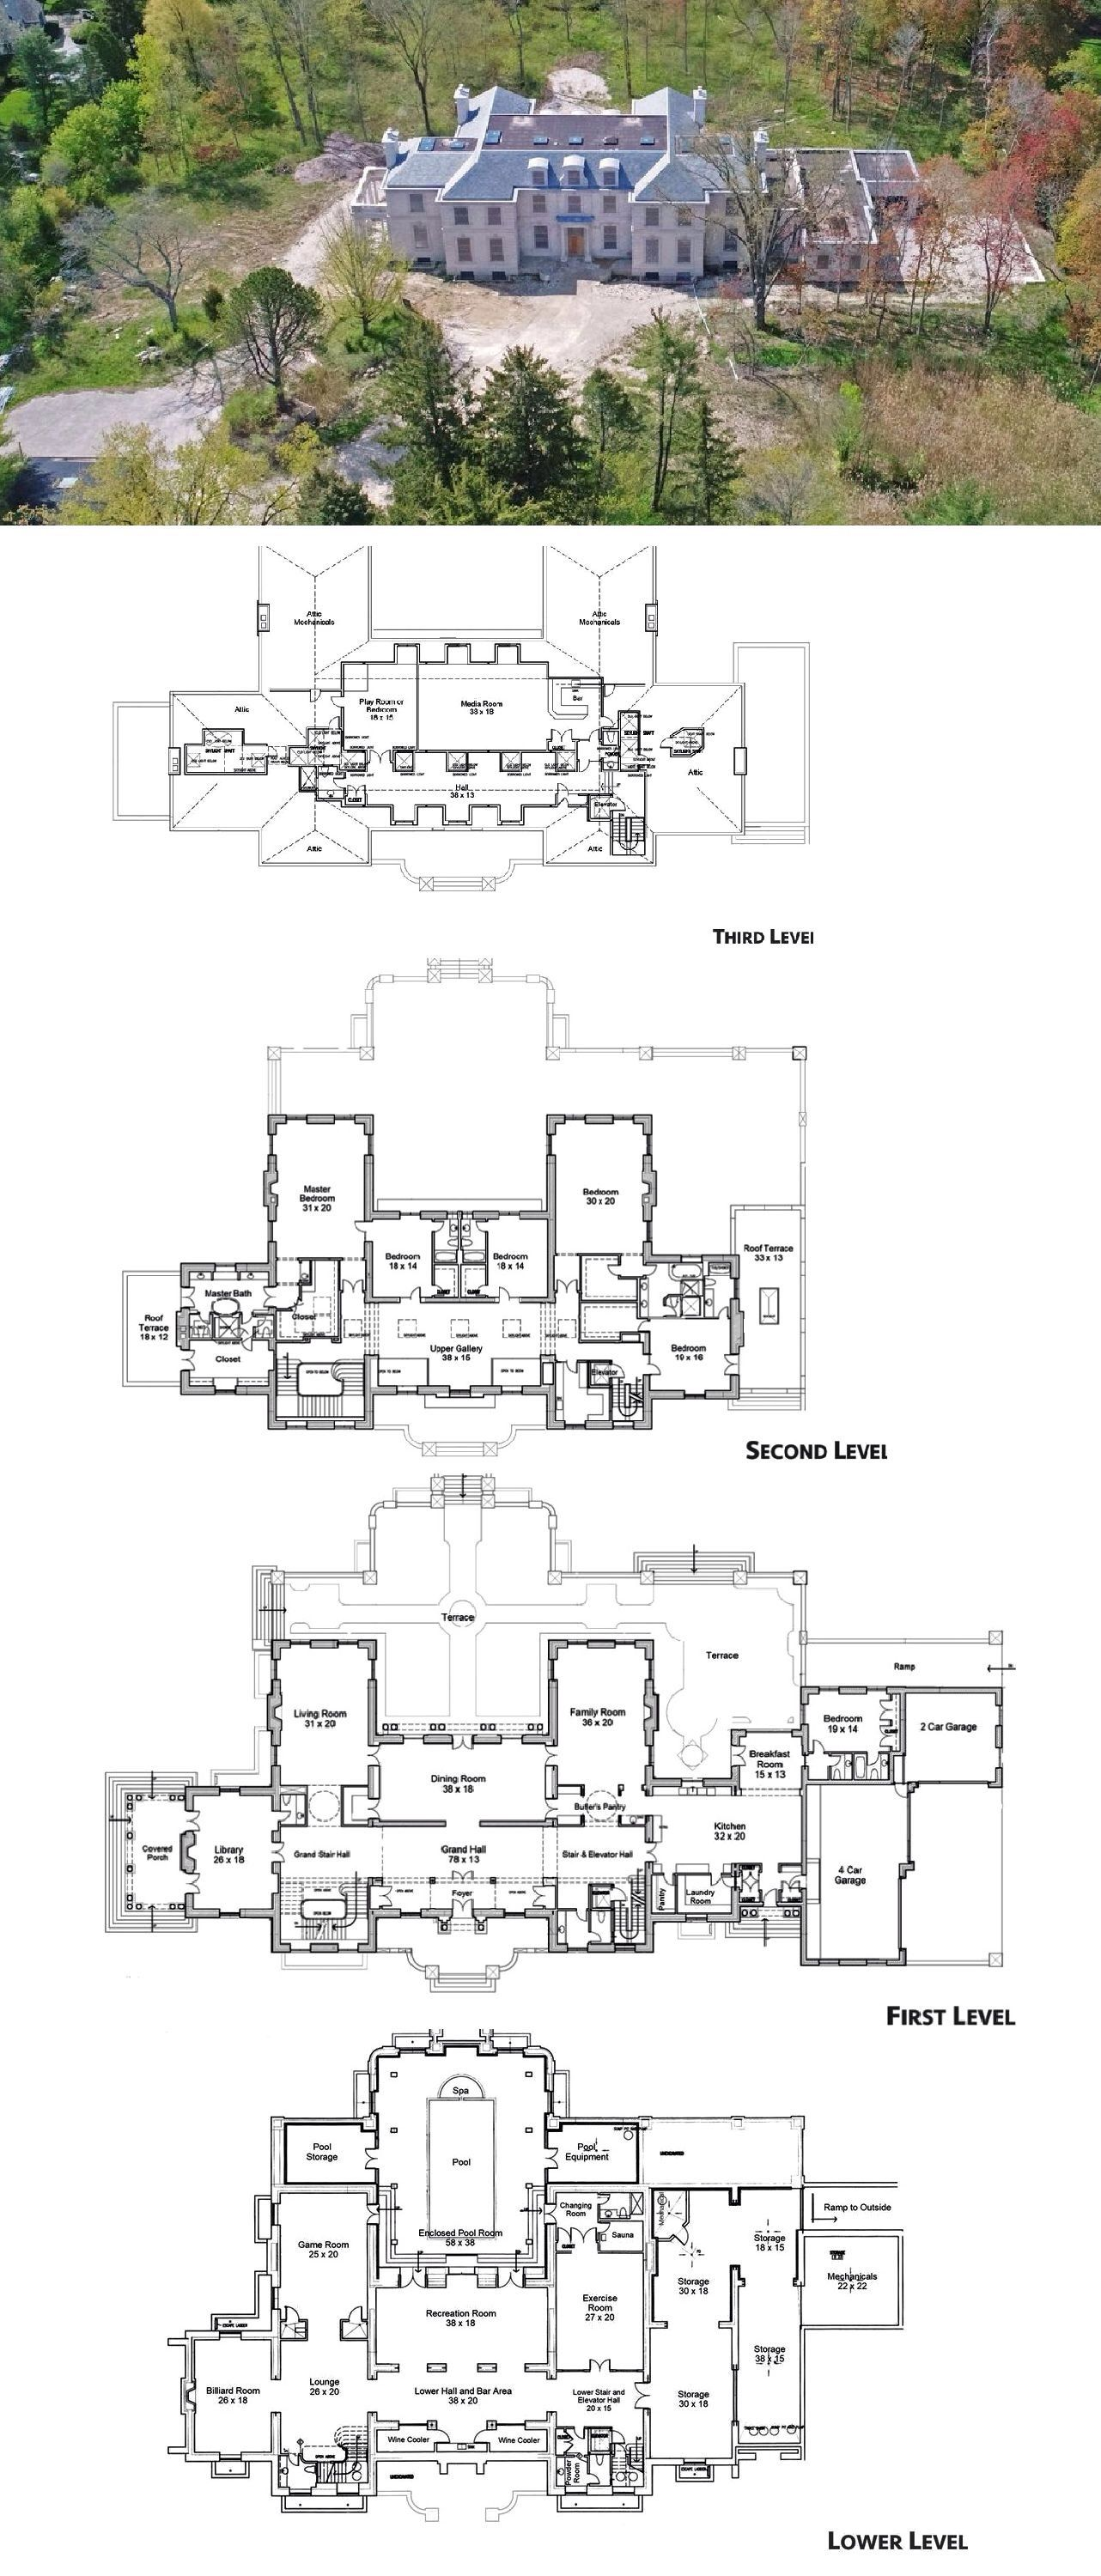 24 000 Square Foot Unfinished Mansion In Lake Forest Illinois House Plans Mansion Mansion Floor Plan Dream House Plans